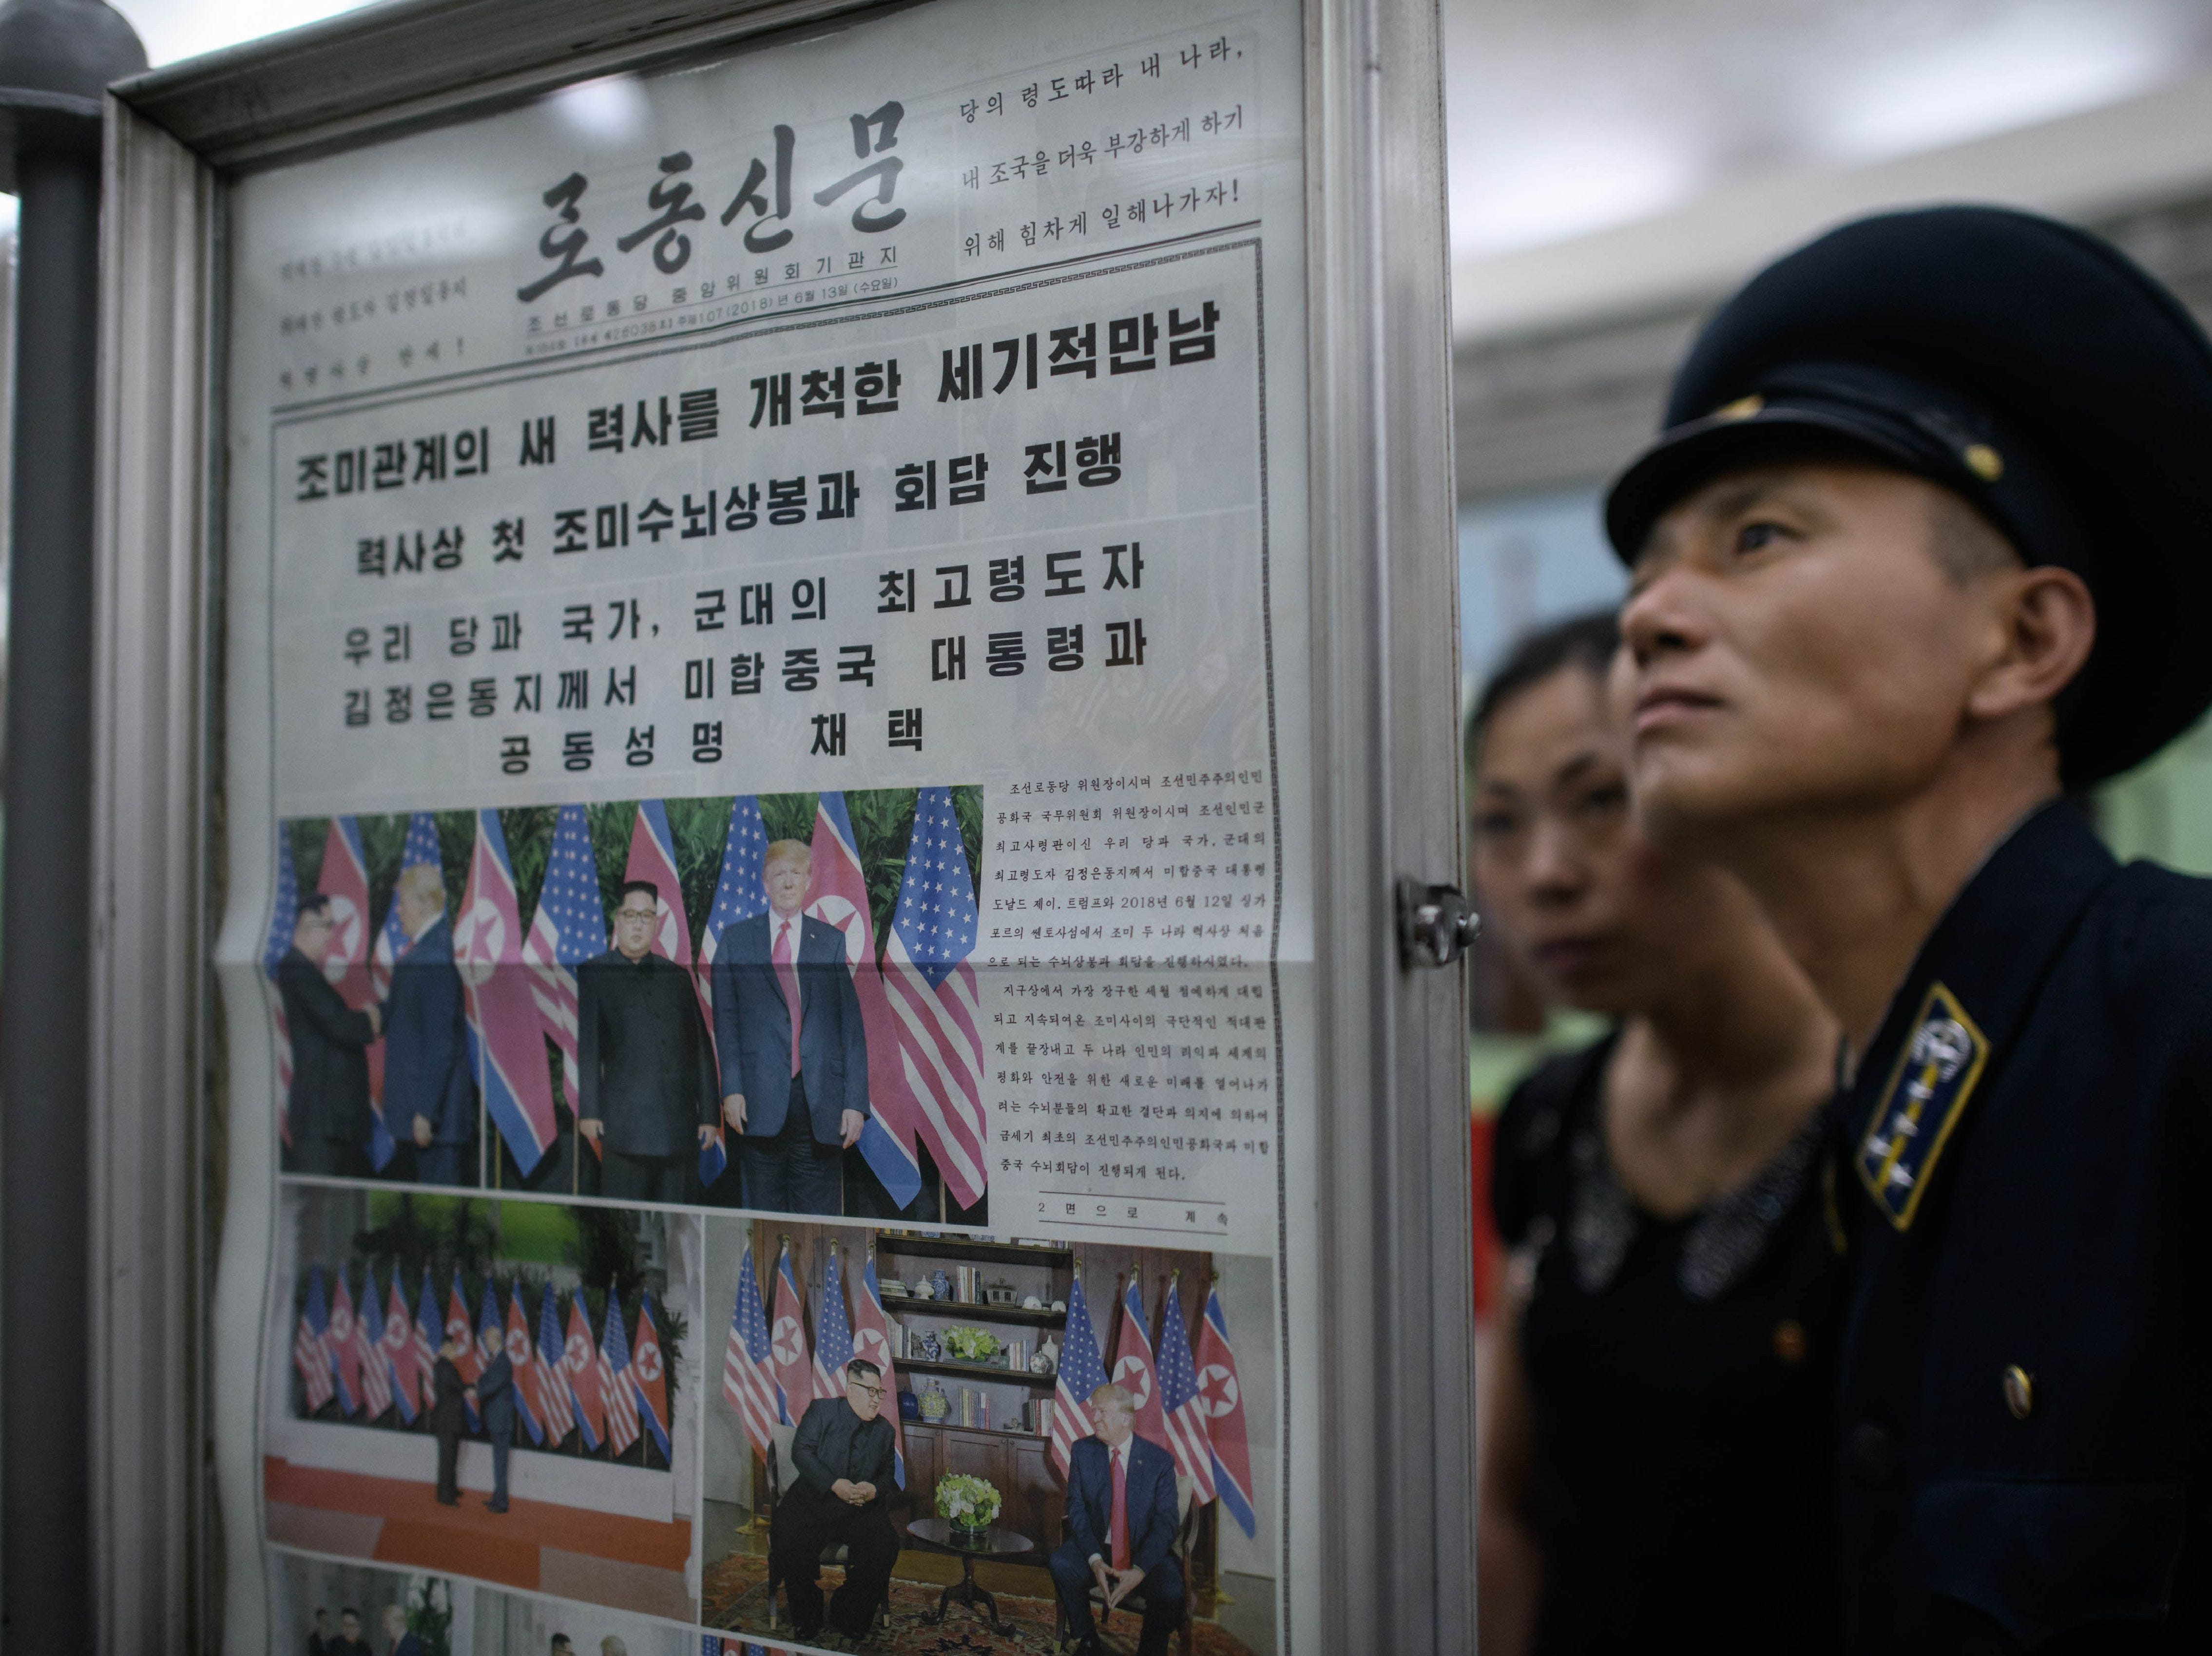 June 13, 2018: A conductor reads the latest edition of the Rodong Sinmun newspaper showing images of North Korean leader Kim Jong Un meeting with President Donald Trump during their summit in Singapore, at a news stand on a subway platform of the Pyongyang metro.